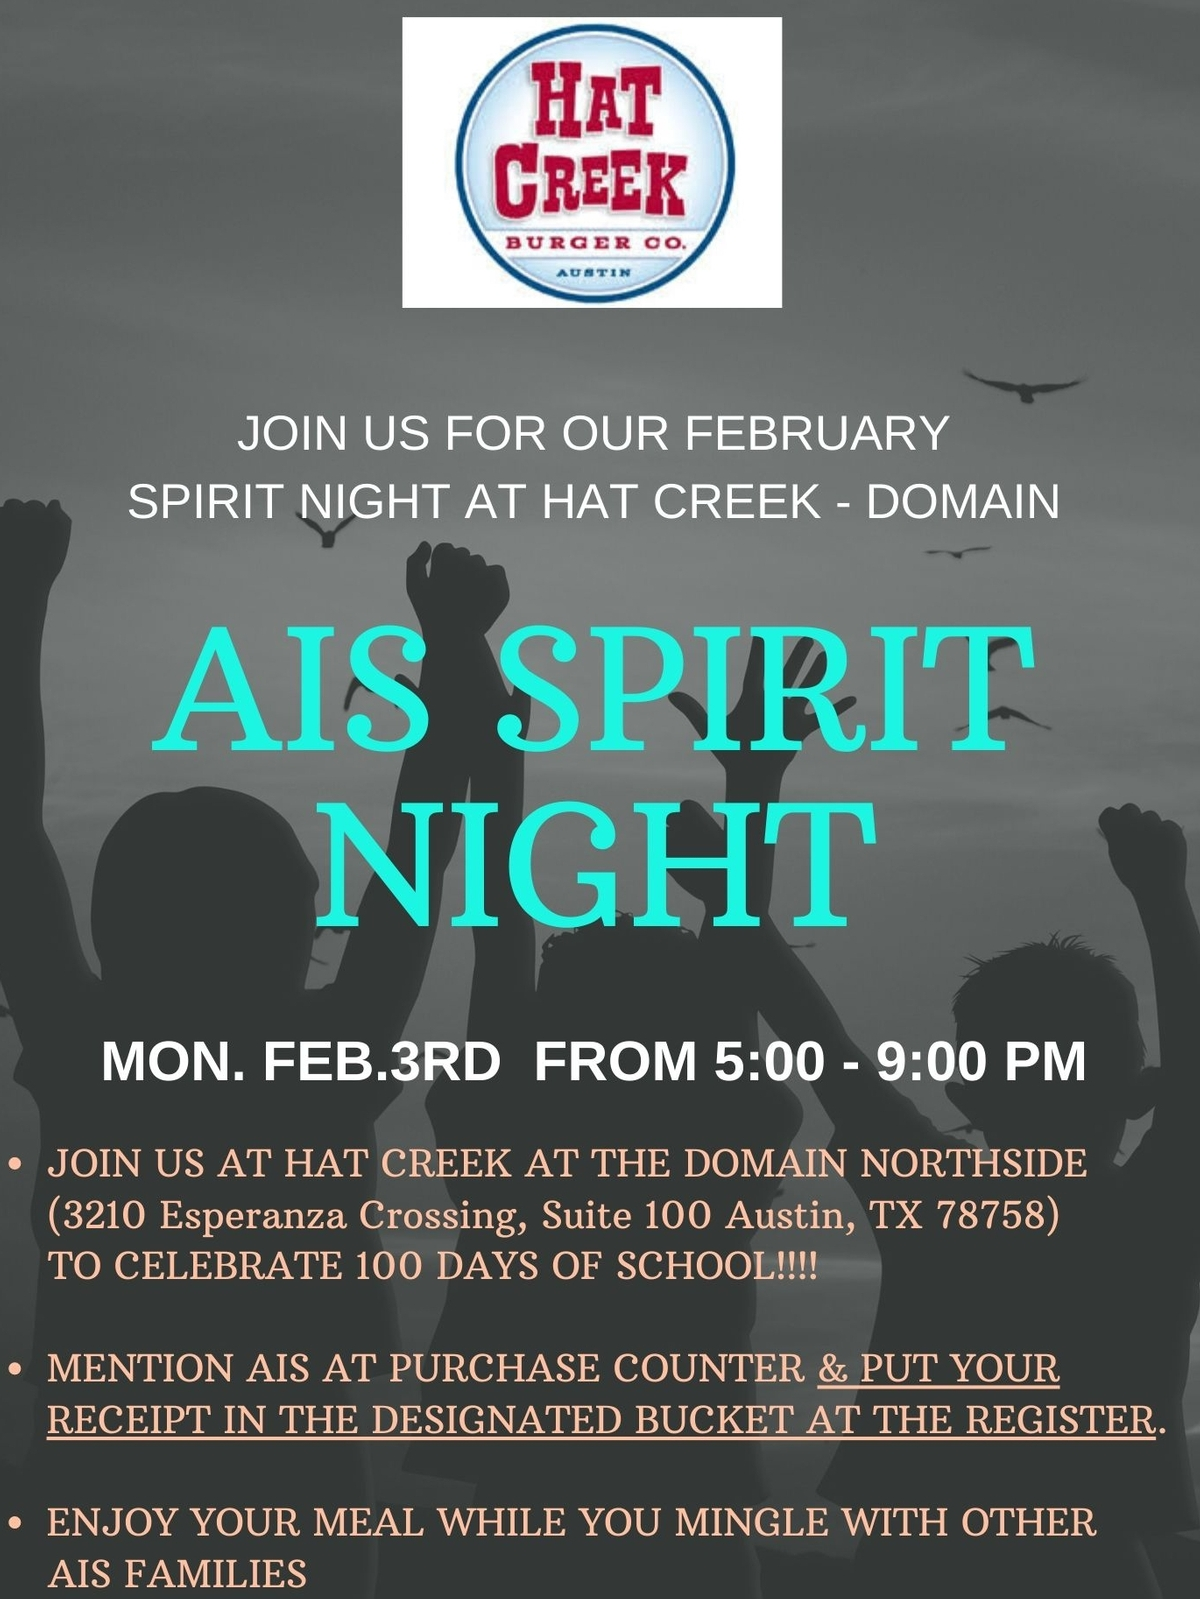 Spirit Night at Hat Creek - Domain Northside